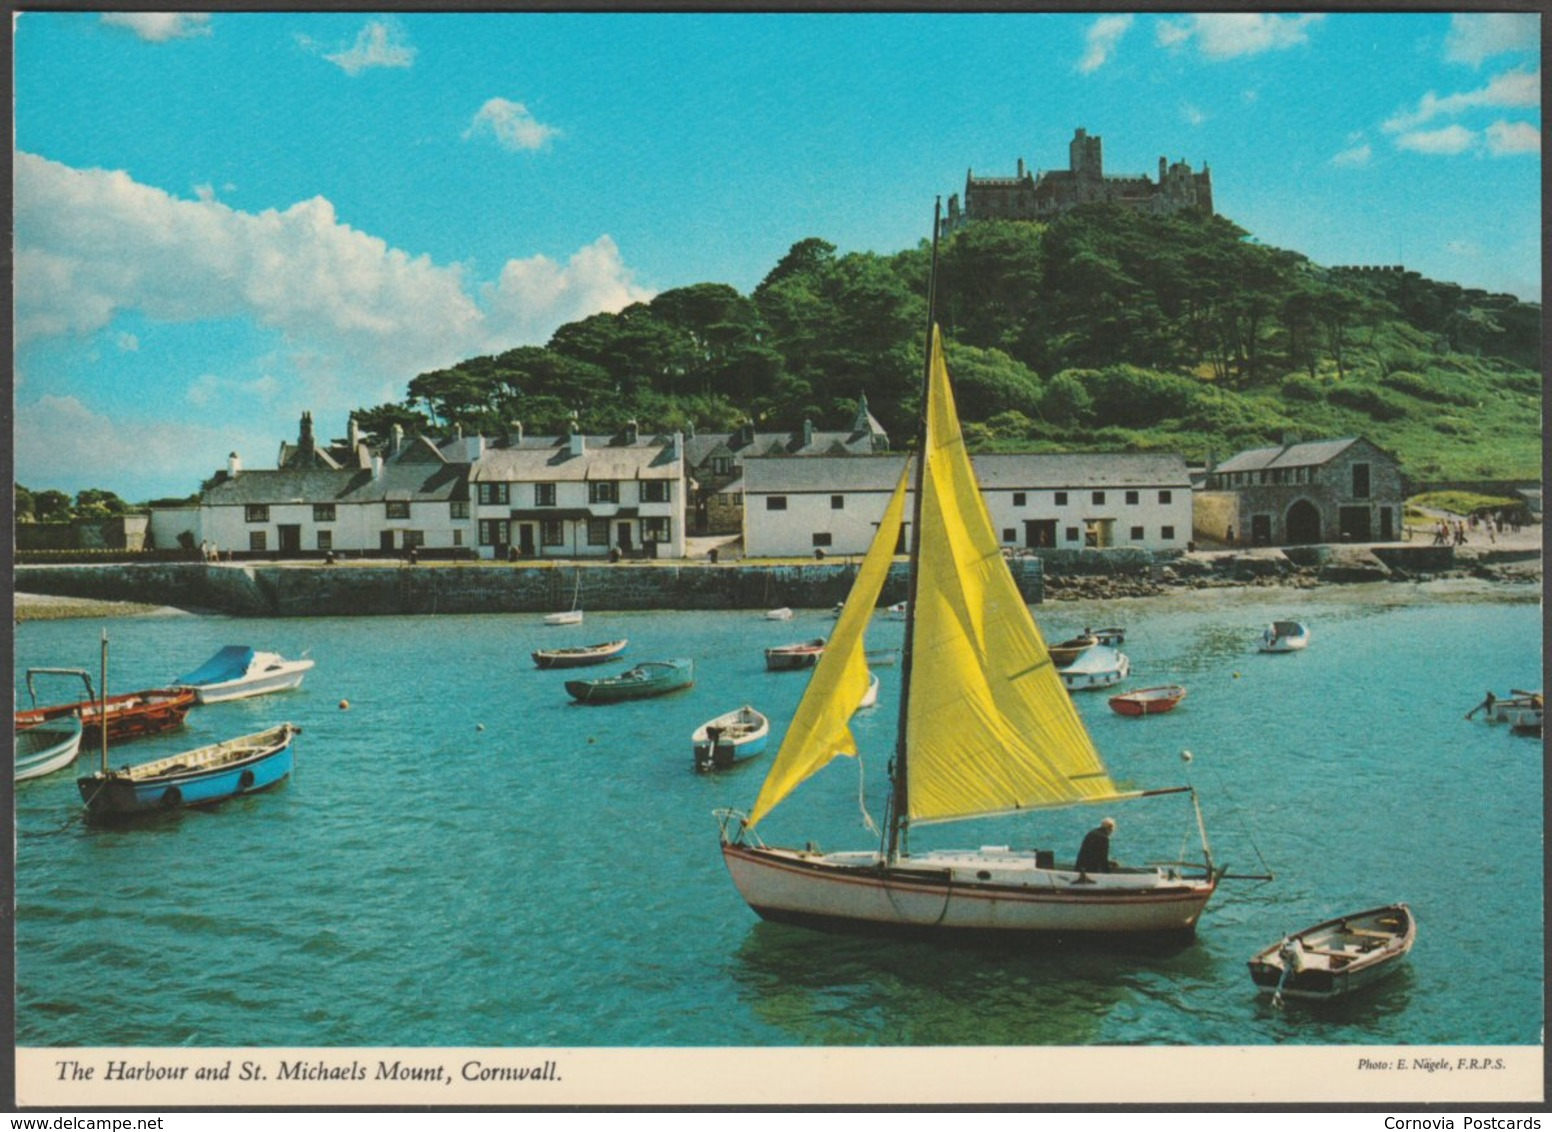 The Harbour And St Michael's Mount, Cornwall, C.1970s - John Hinde Postcard - St Michael's Mount